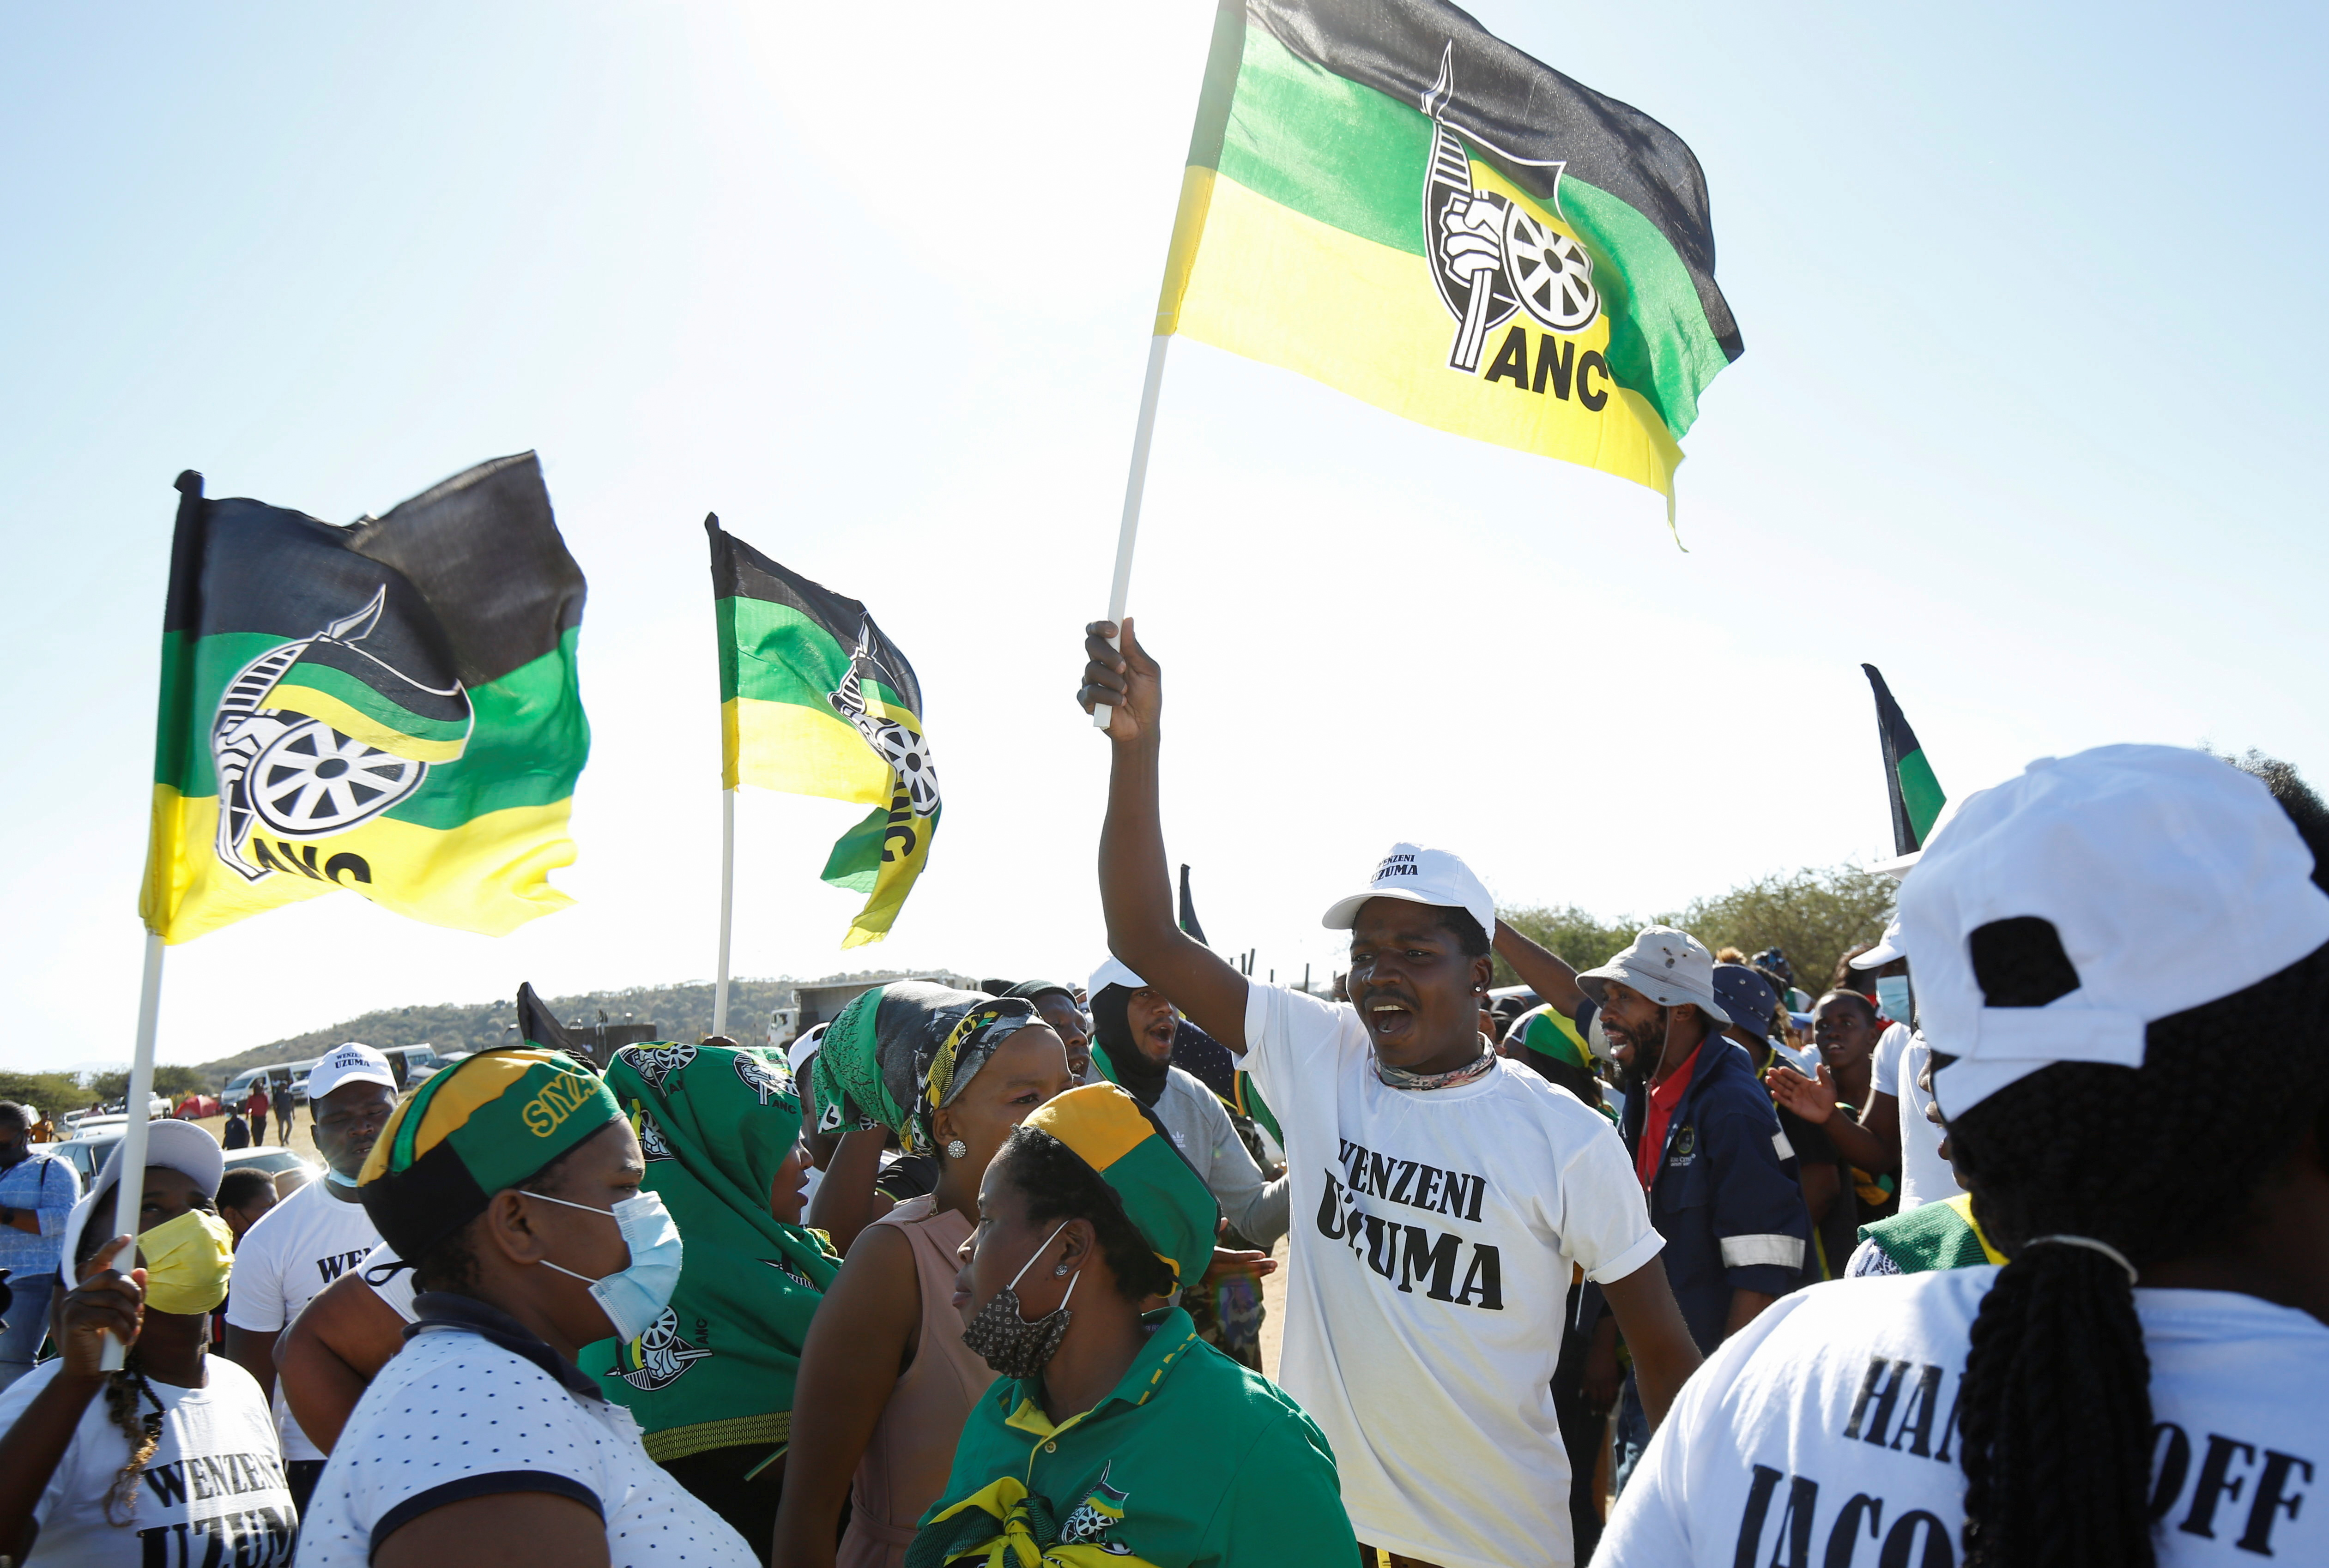 Supporters of former South African President Jacob Zuma, who was sentenced to a 15-month imprisonment by the Constitutional Court, sing and dance in front of his home in Nkandla, South Africa, July 3, 2021. REUTERS/Rogan Ward